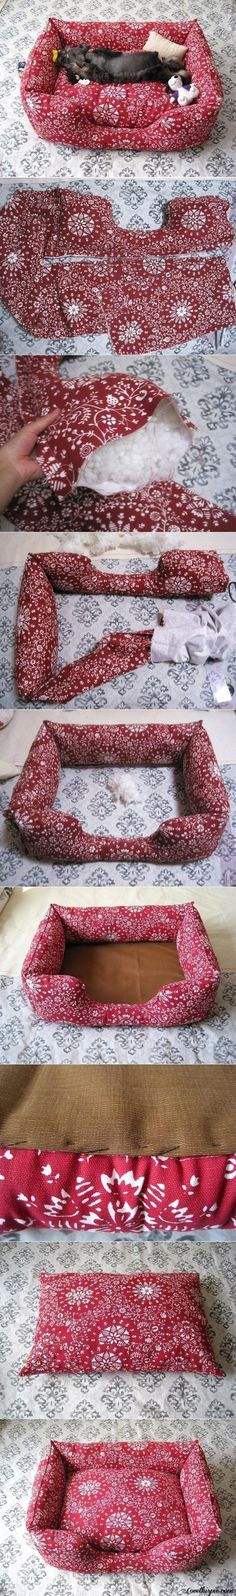 DIY Fabric Pet Sofa diy furniture crafts craft ideas diy ideas home diy pet bed fabric                                                                                                                                                                                 More